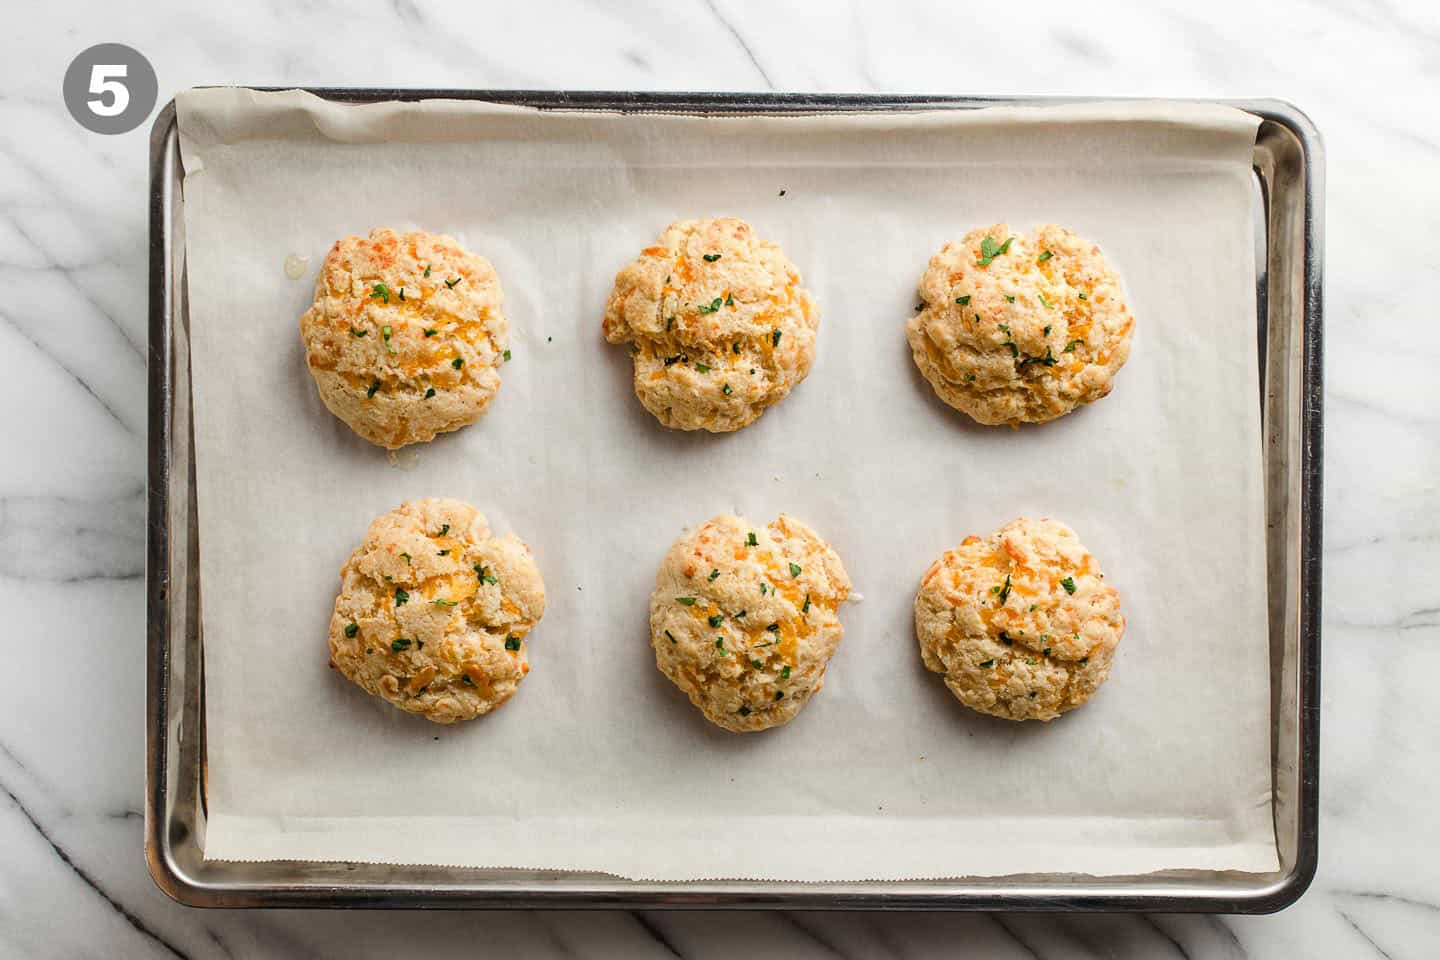 Baked cheddar bay biscuits on a baking sheet.